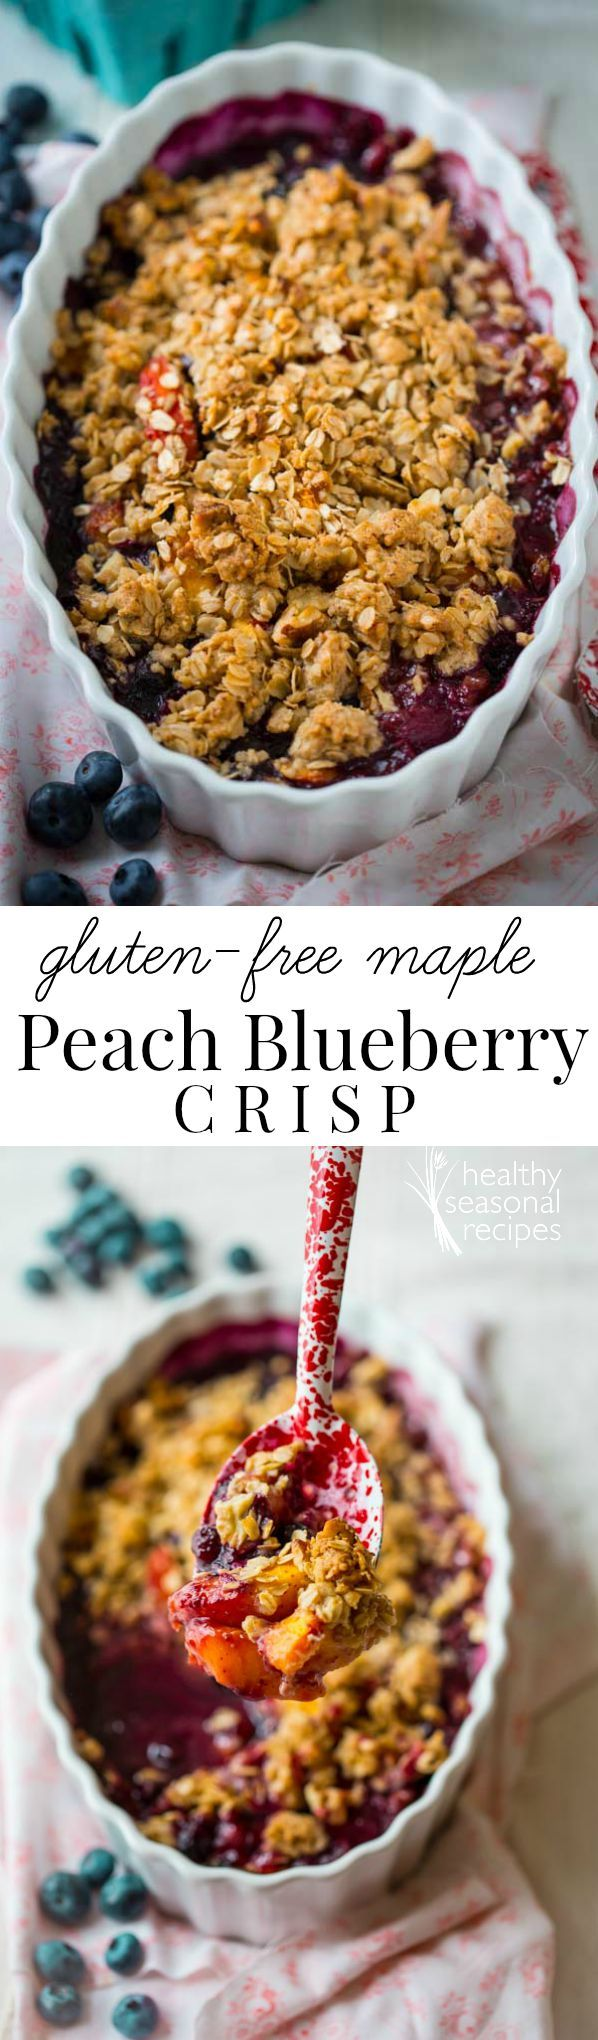 Blog post at Healthy Seasonal Recipes : This gluten-free Peach Blueberry Crisp is high in Omega-3 fatty acids and sweetened with maple sugar! Leave the skins on the peaches for mor[..]